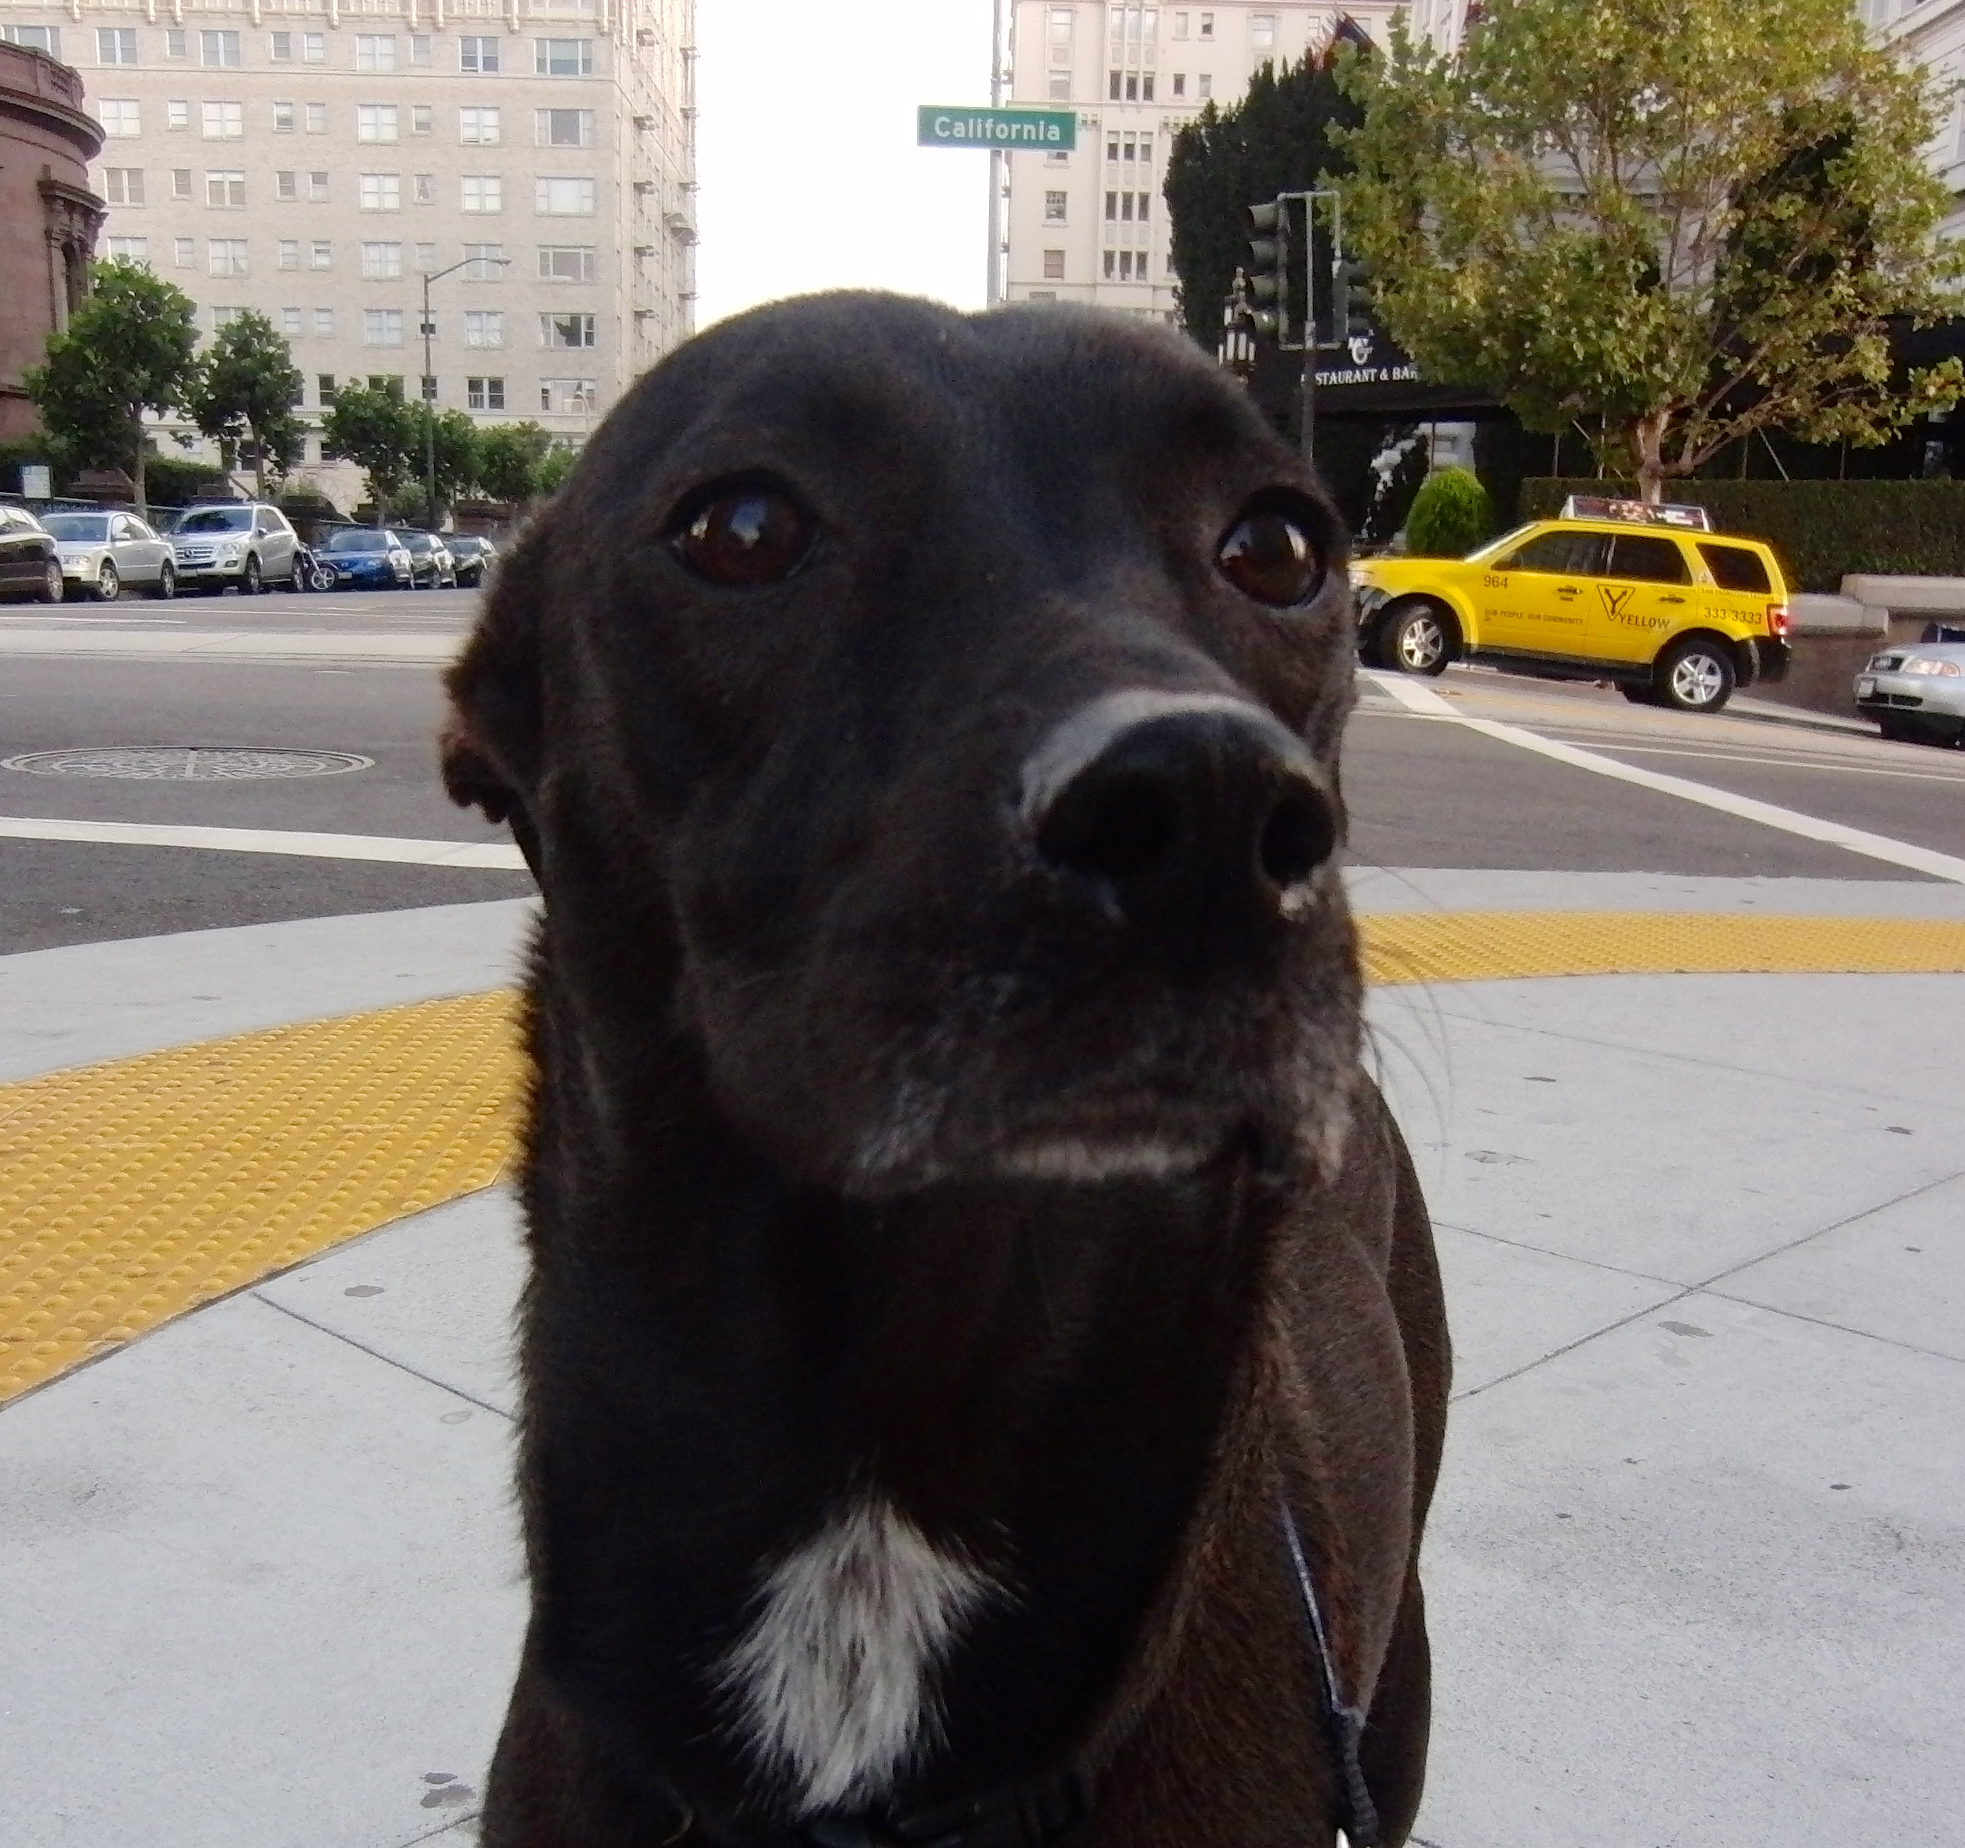 Formosan Mountain Dog/Whippet Mix, Black with White Spot on Chest